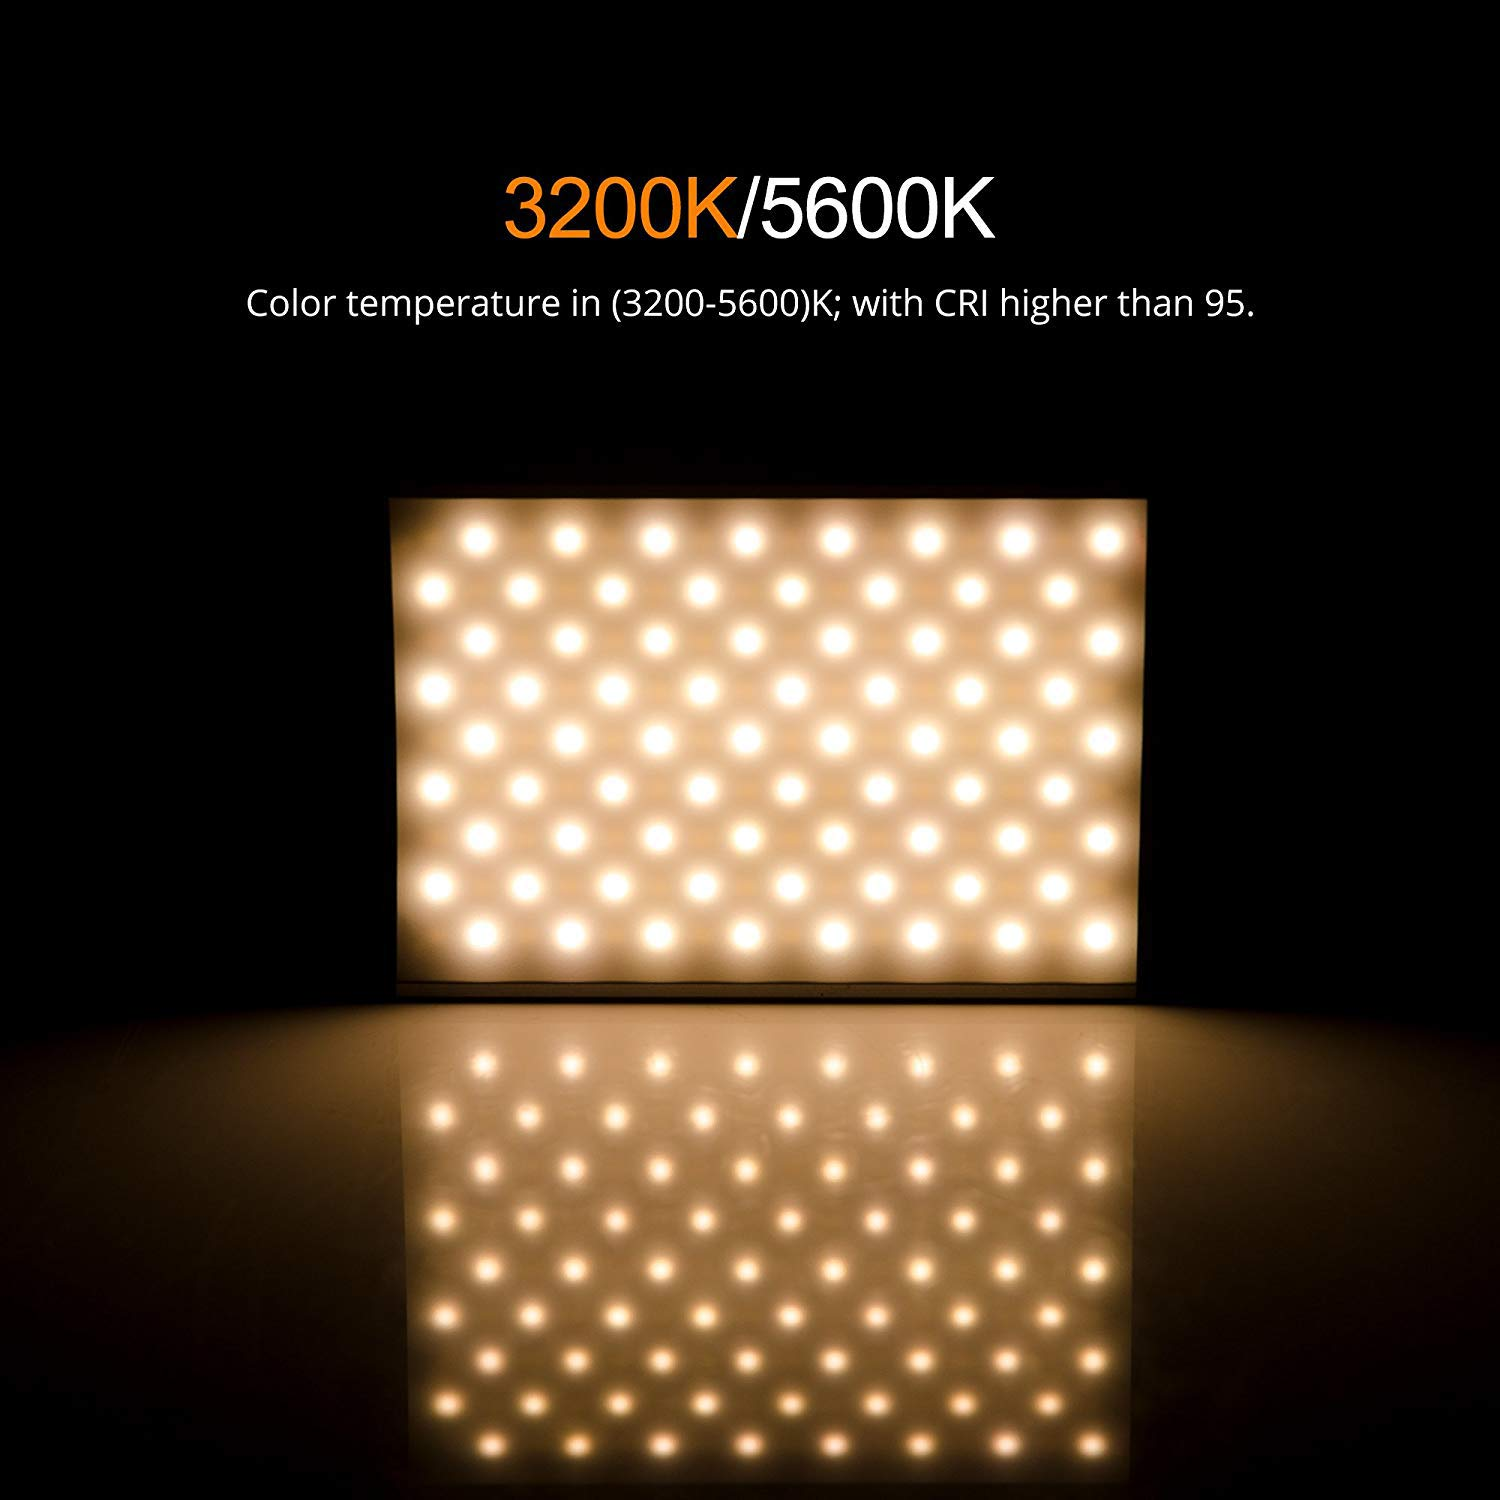 LED Light Photography Tolifo Pt-15b LED Video Light Lamp Panel LED Camera Light With Mini Size for DSLR And Camcorder Ultra Thin Aluminum Alloy with Adjustable Color Temperature 3200K-5500K